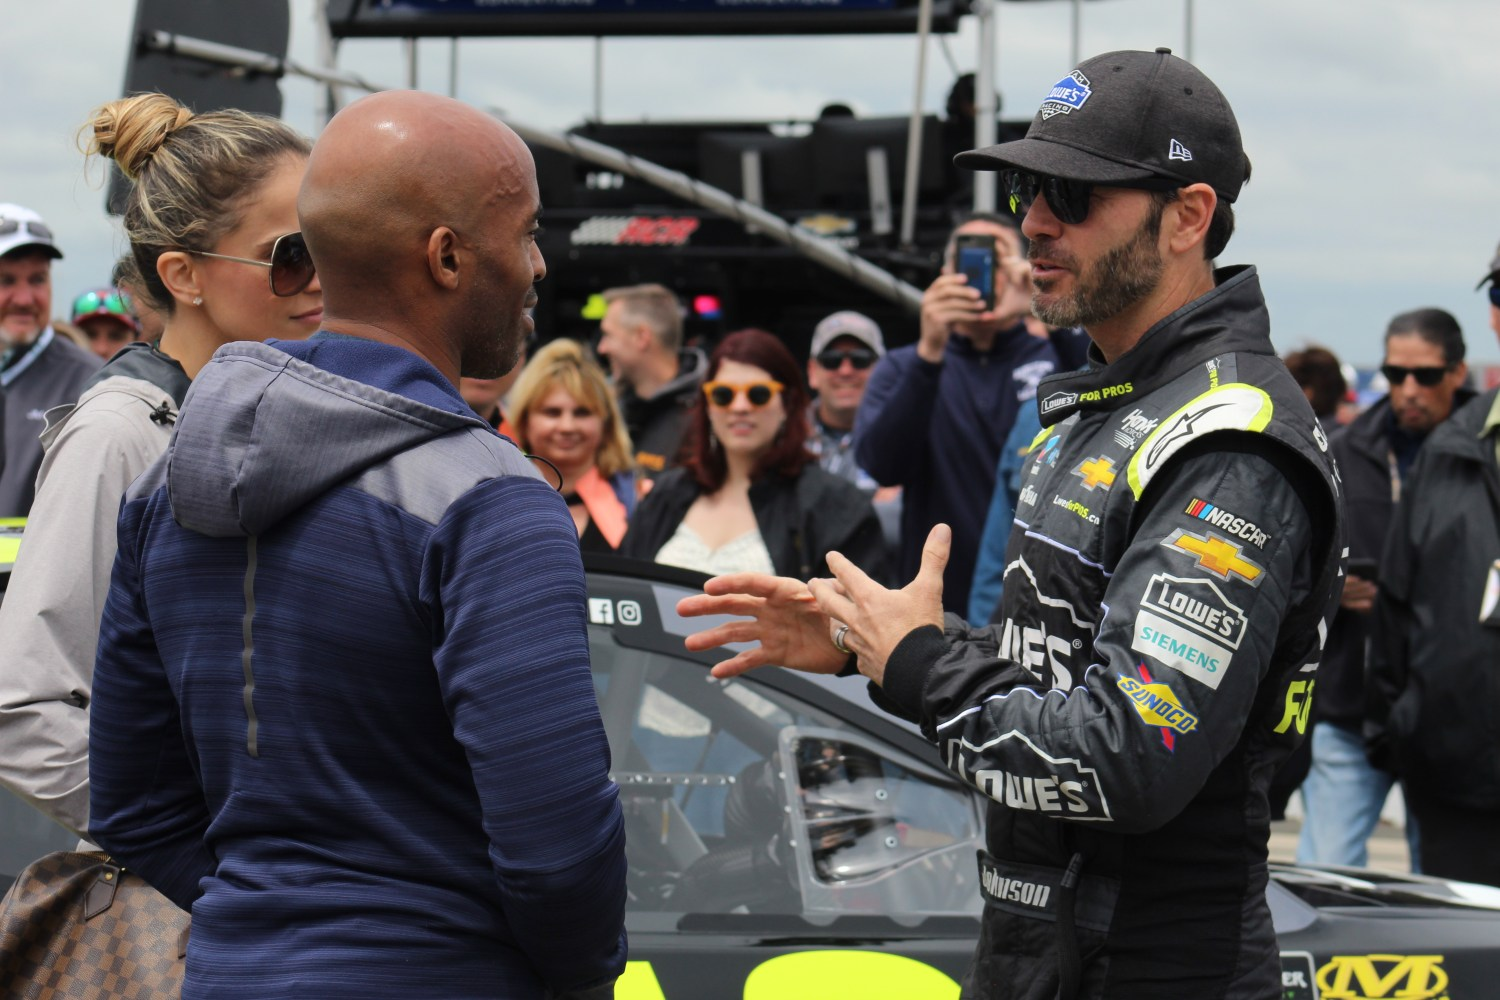 Jimmie Johnson (right) chats with Tiki Barber (left) on pit road ahead of the 2018 Pocono 400. (Tyler Head | The Racing Experts)